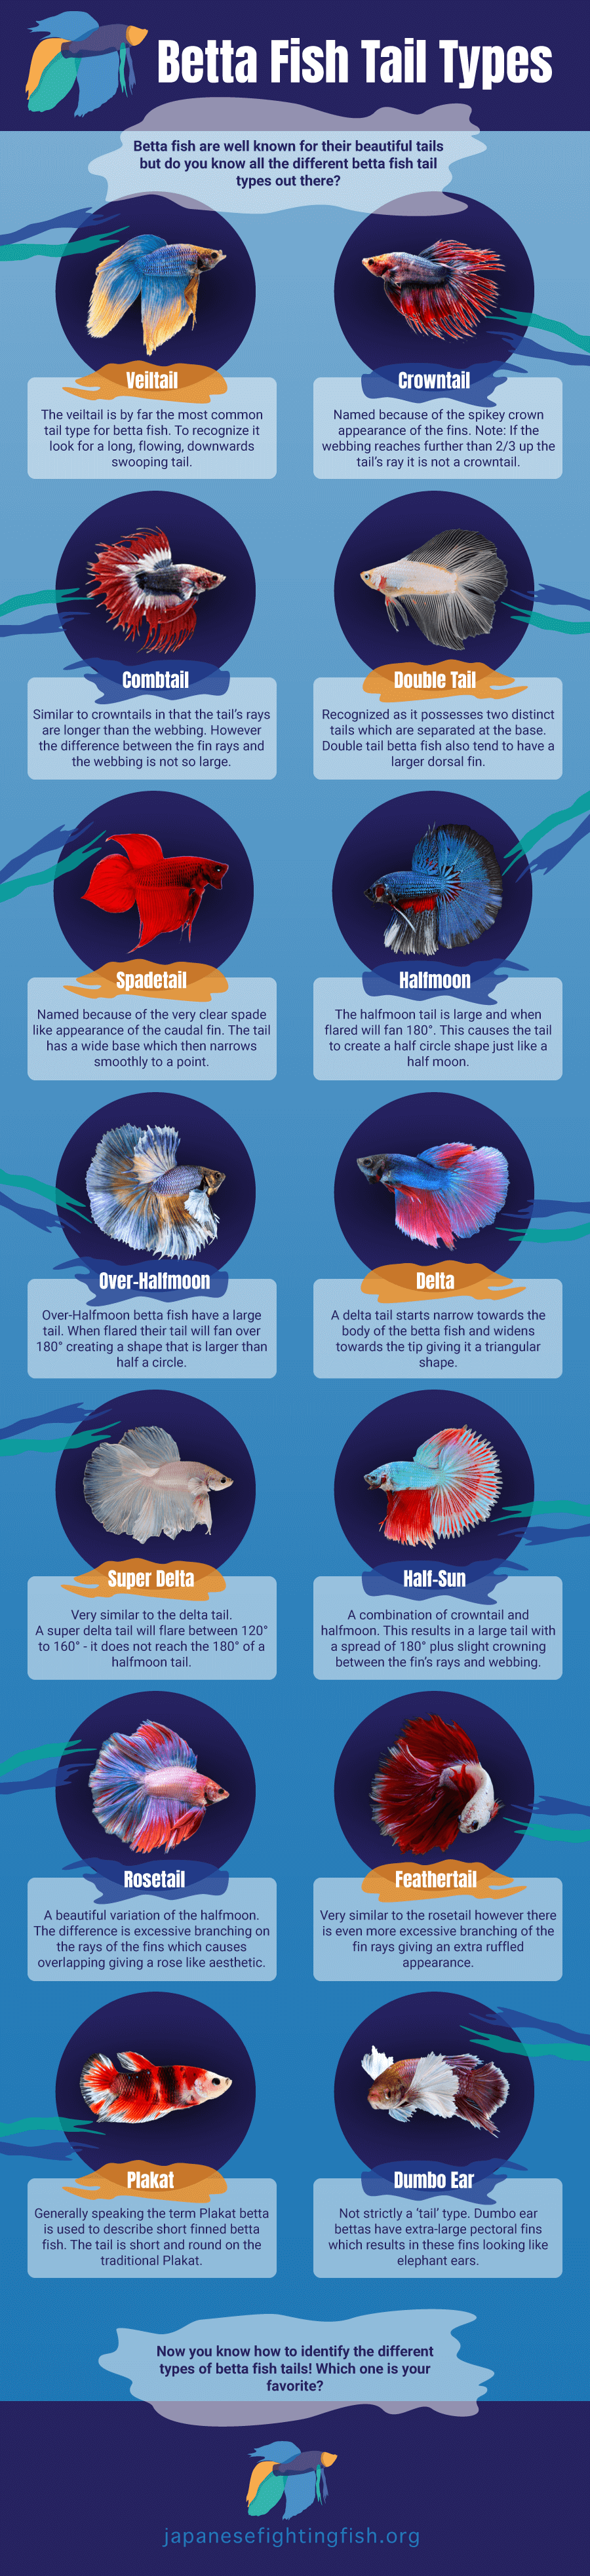 Betta Fish Tail Types Infographic